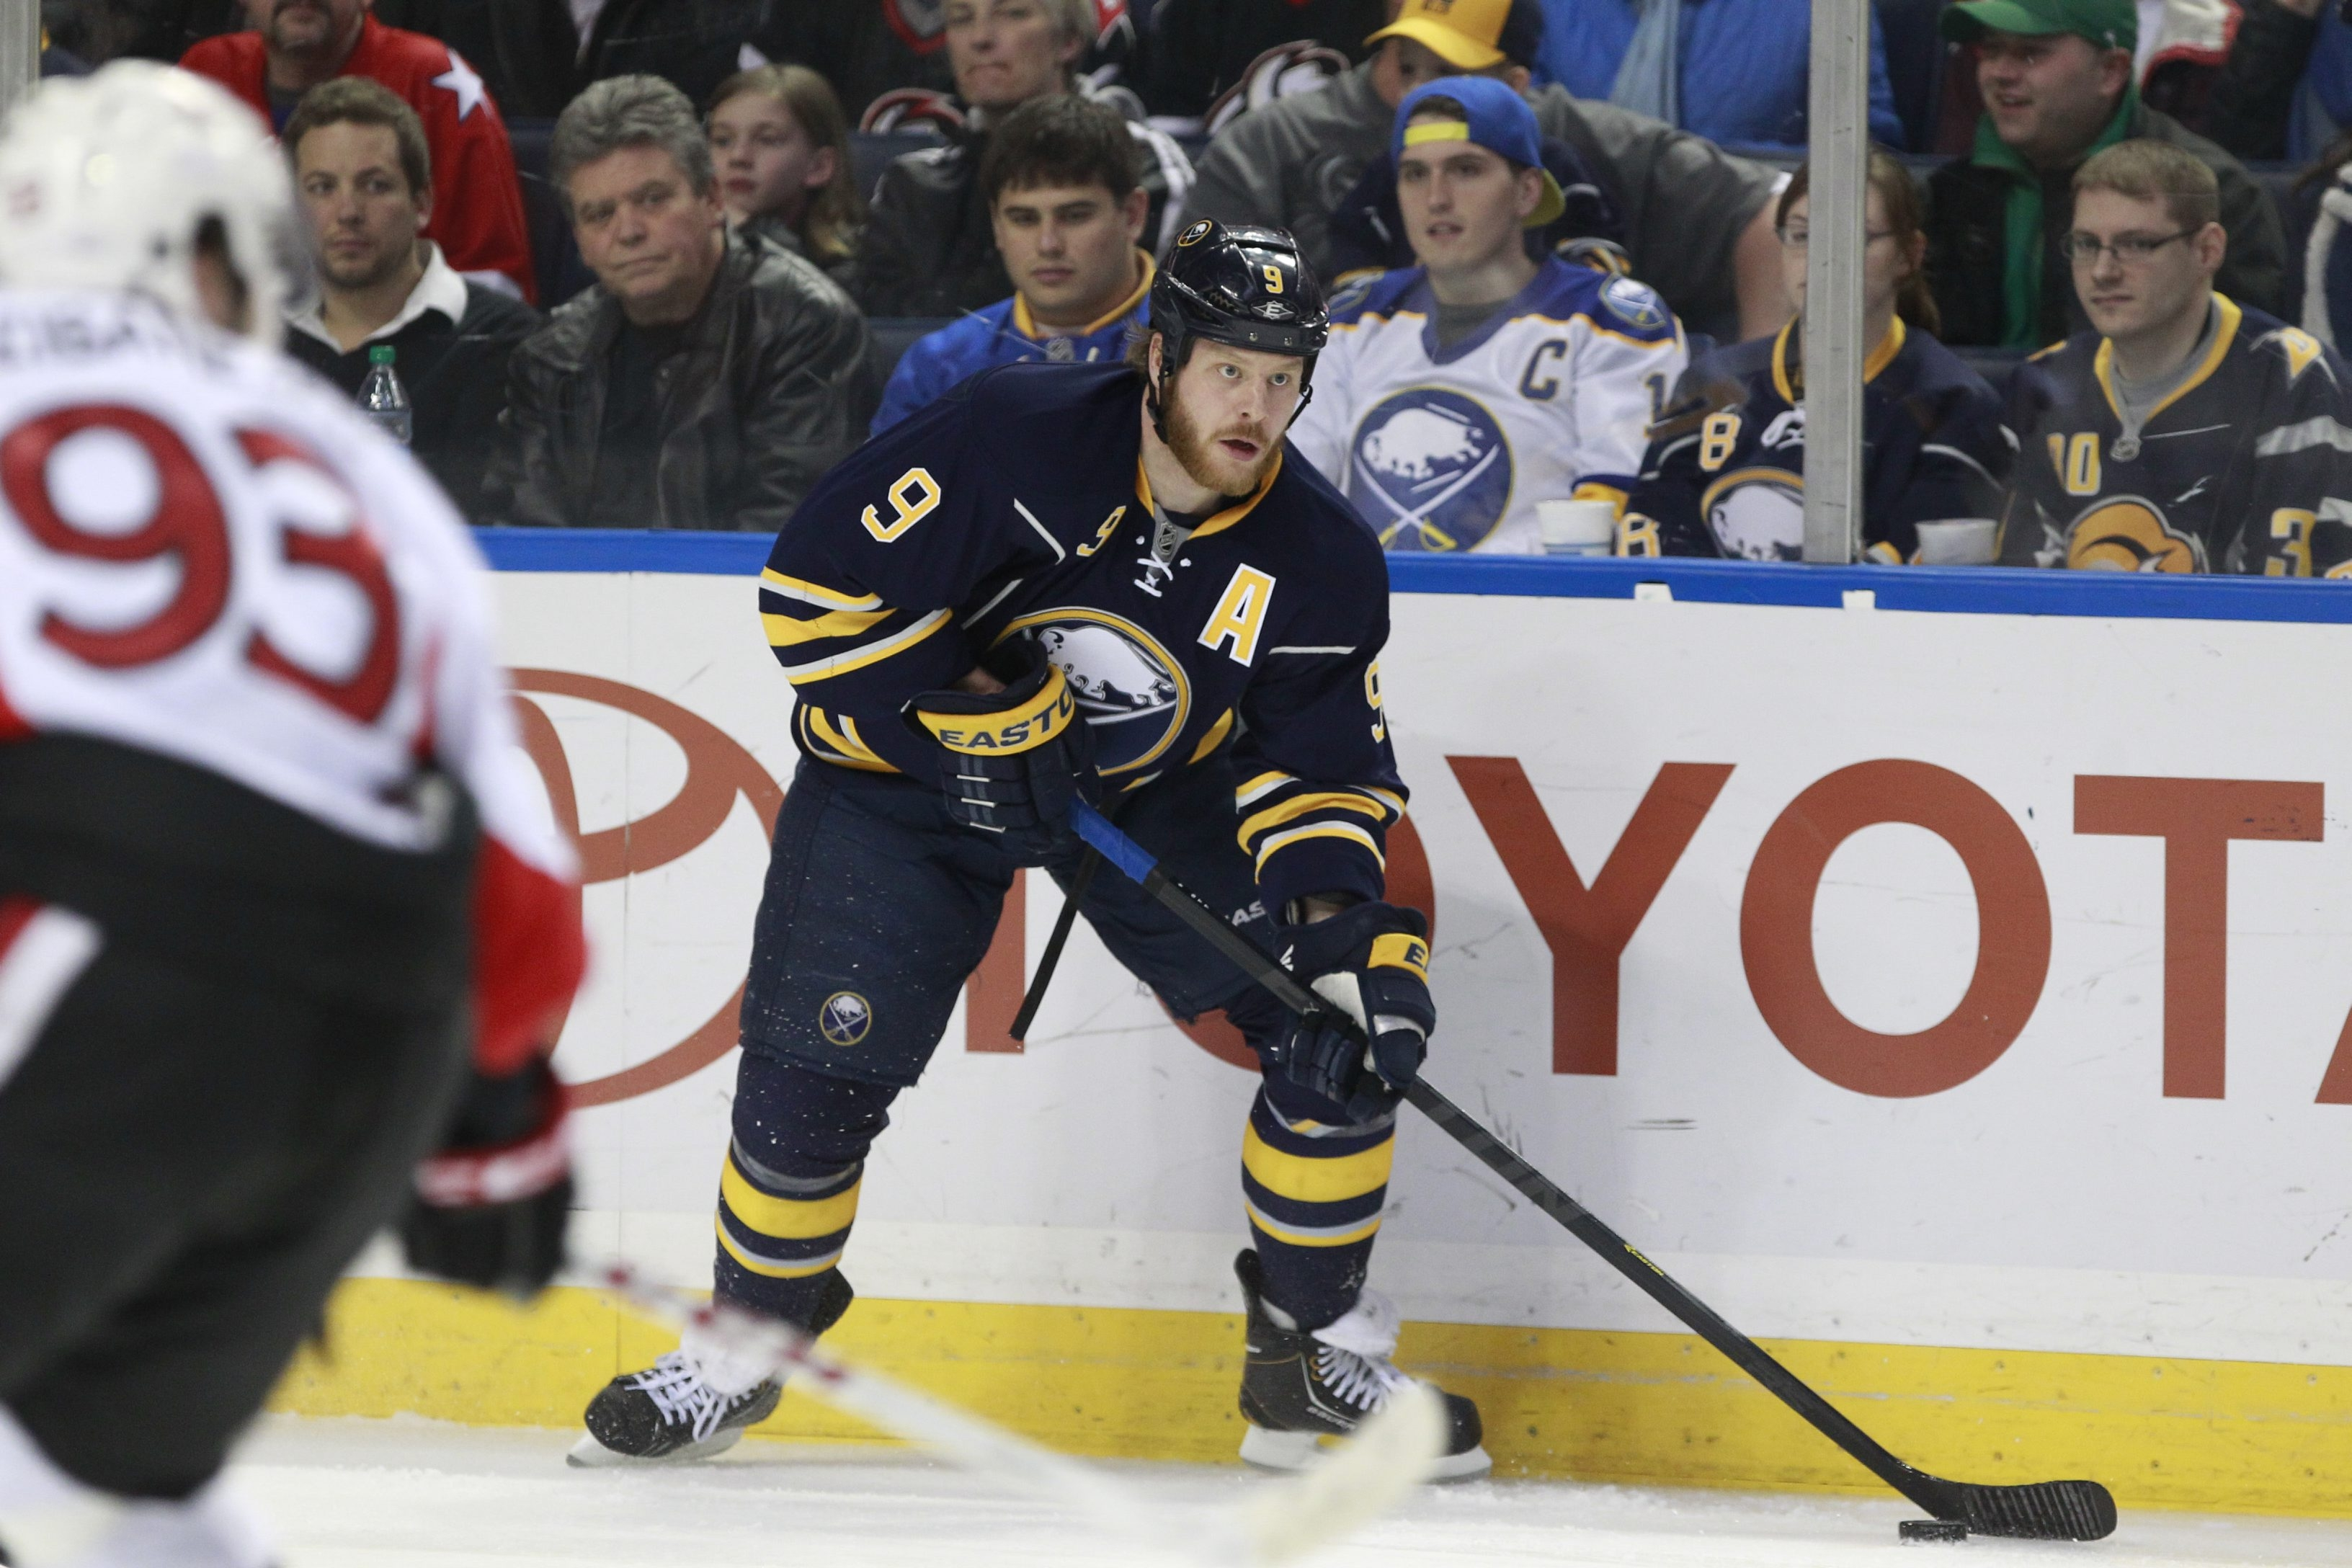 """Sabres co-captain Steve Ott says the team needs to improve its execution. """"It's one guy or everybody, it's everybody continuing to push the game plan,"""" he said.  Harry Scull Jr./Buffalo News"""